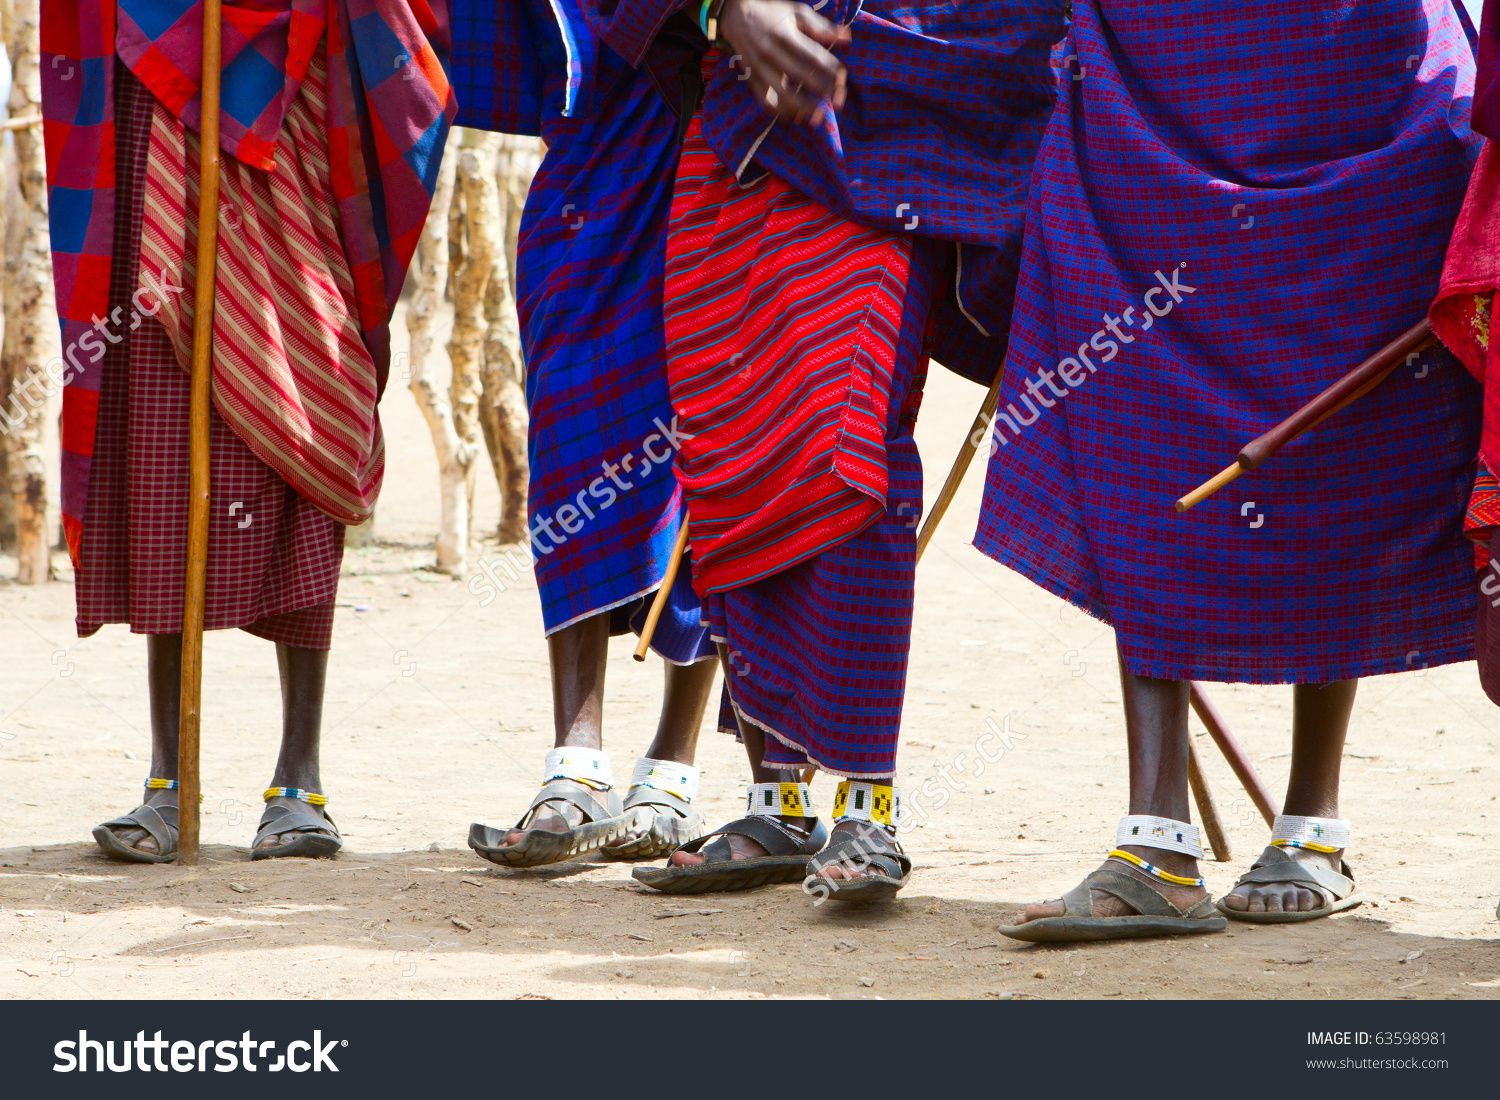 stock-photo-closeup-of-legs-and-colorful-textile-of-masai-tribe-in-tanzania-63598981.jpg (1500×1100)